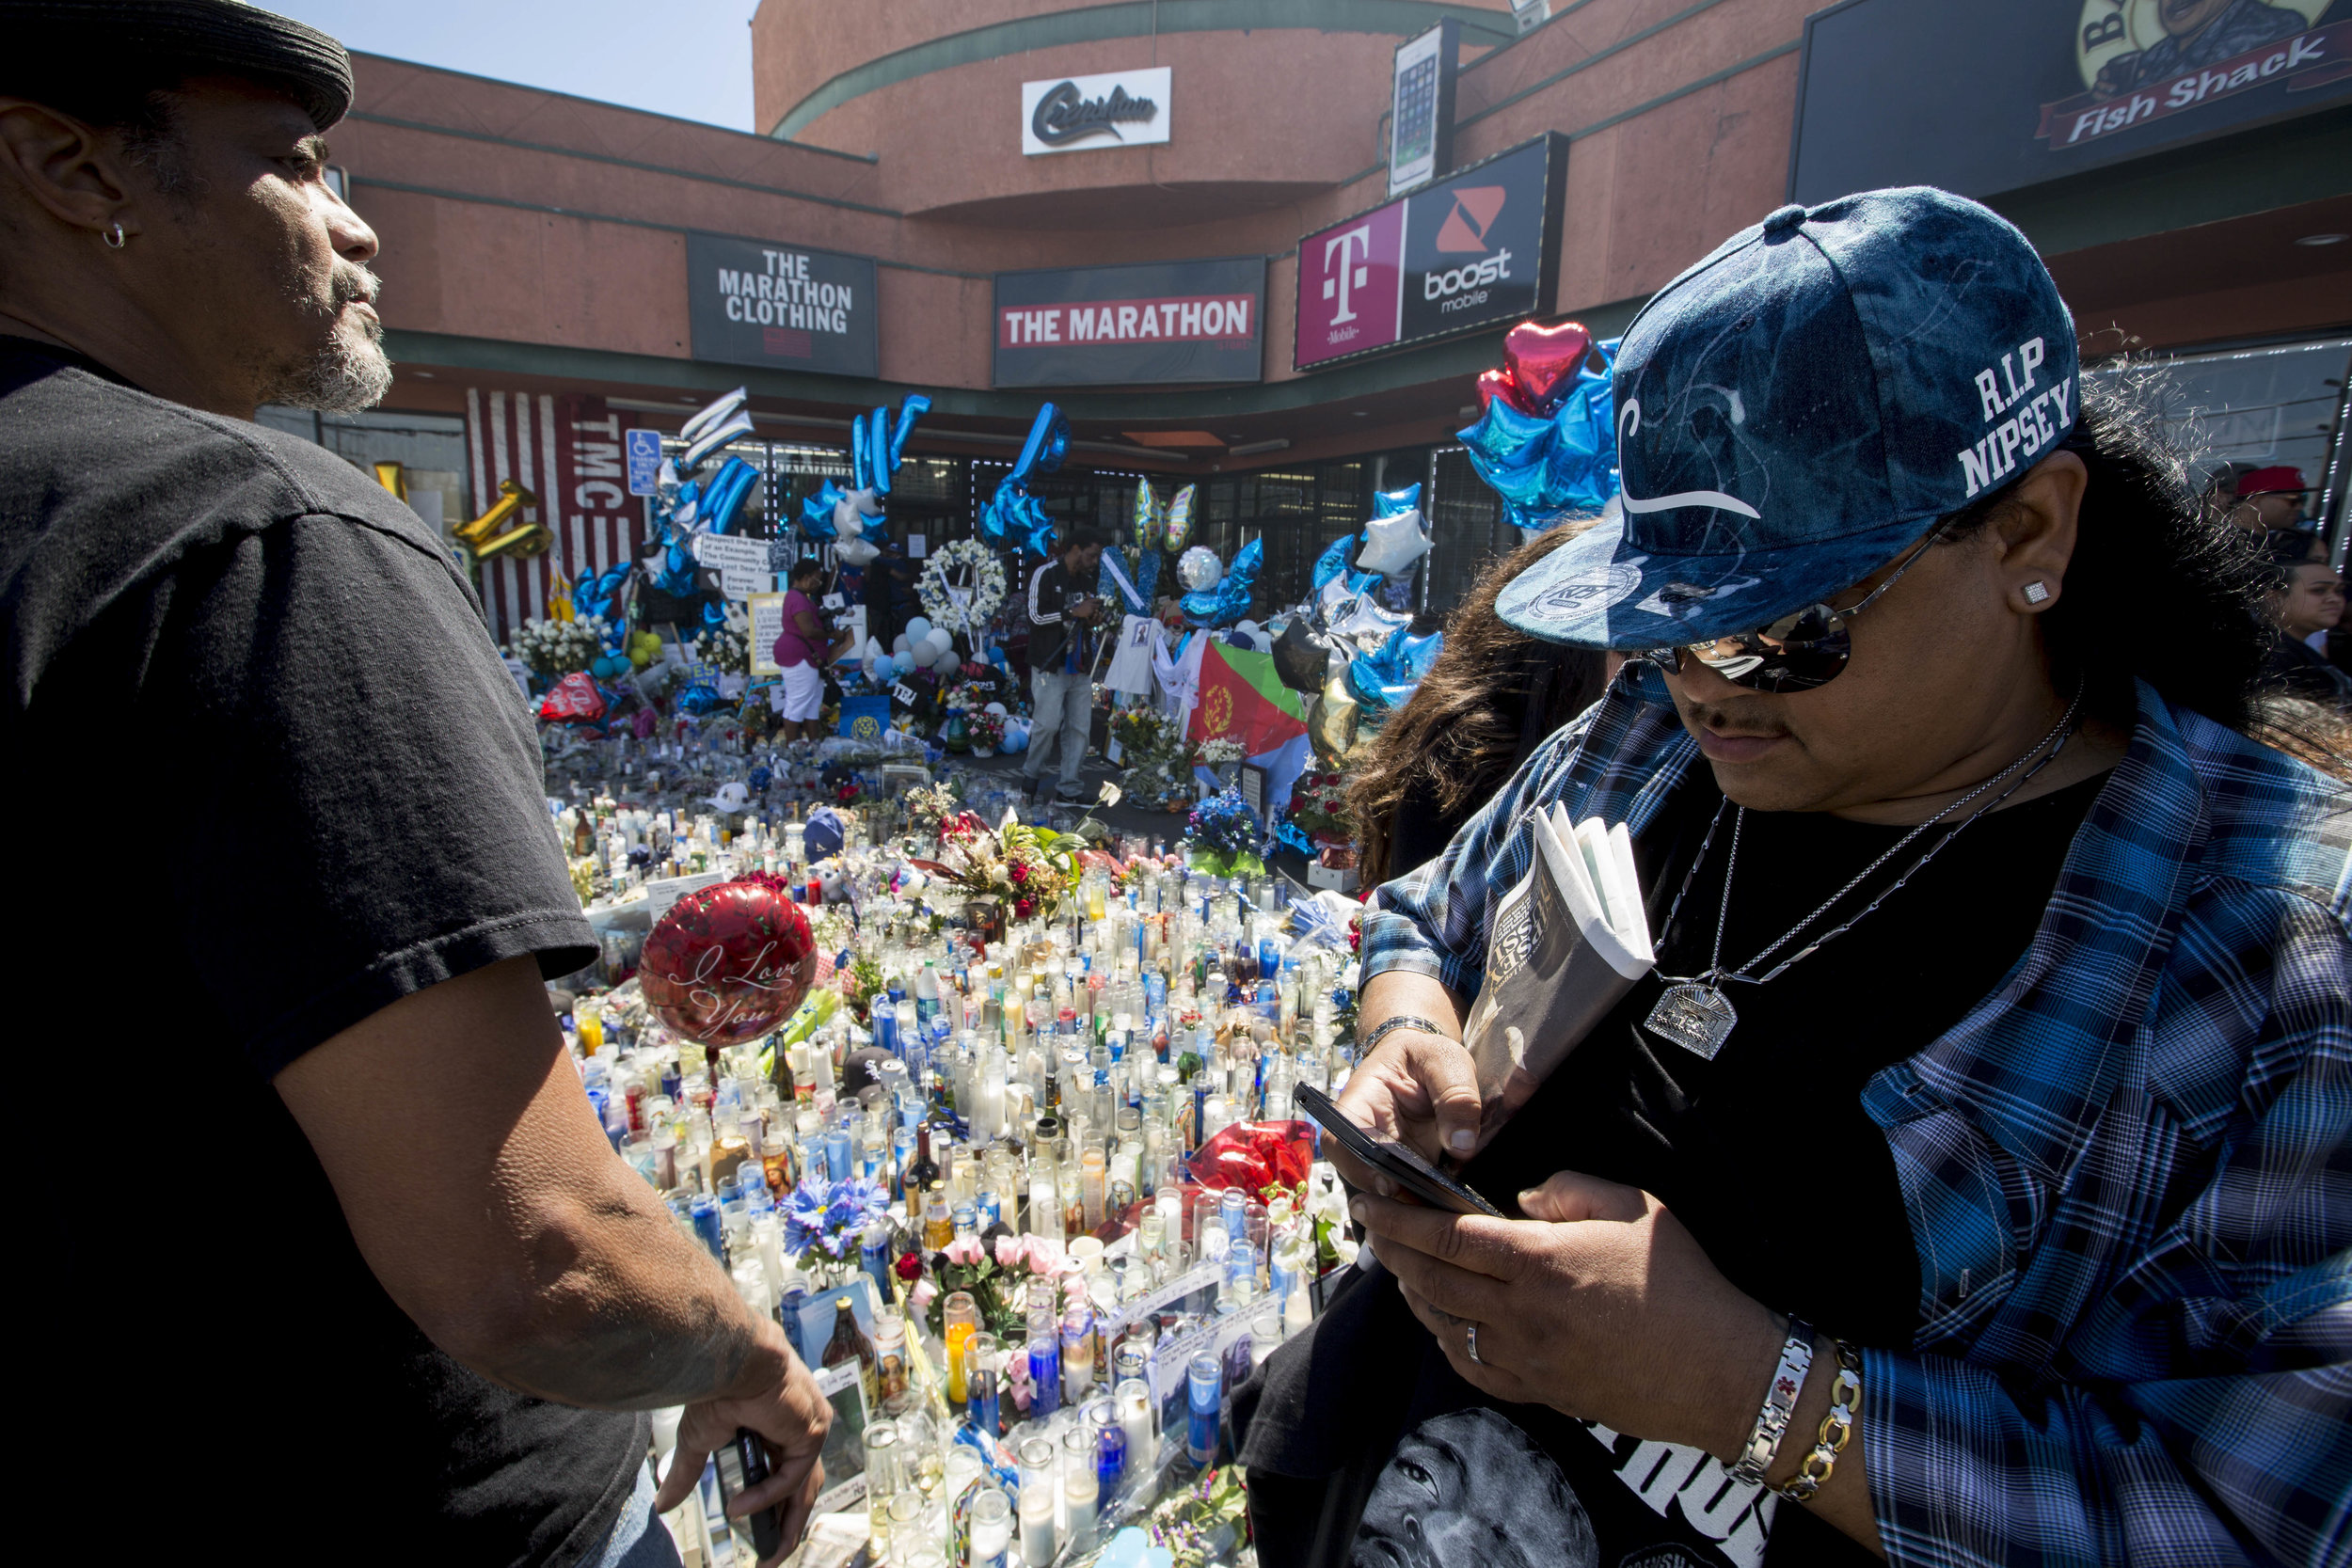 """Cali Rodriguez (right) visits Nipsey Hussle's memorial at The Marathon Clothing store on Slauson Avenue in Los Angeles, California on Wednesday, April 6, 2019. When asked how Nipsey made him feel, Rodriguez stated that, """"Nipsey was uplifting, man, because he gave back to the community. How many people do you know that get a taste of fame and come back and give back to your community? He was just a genuine good-hearted person.""""  The 33-year-old rapper was murdered on March 31 in front of The Marathon Clothing store which he owned. (Jose Lopez)"""